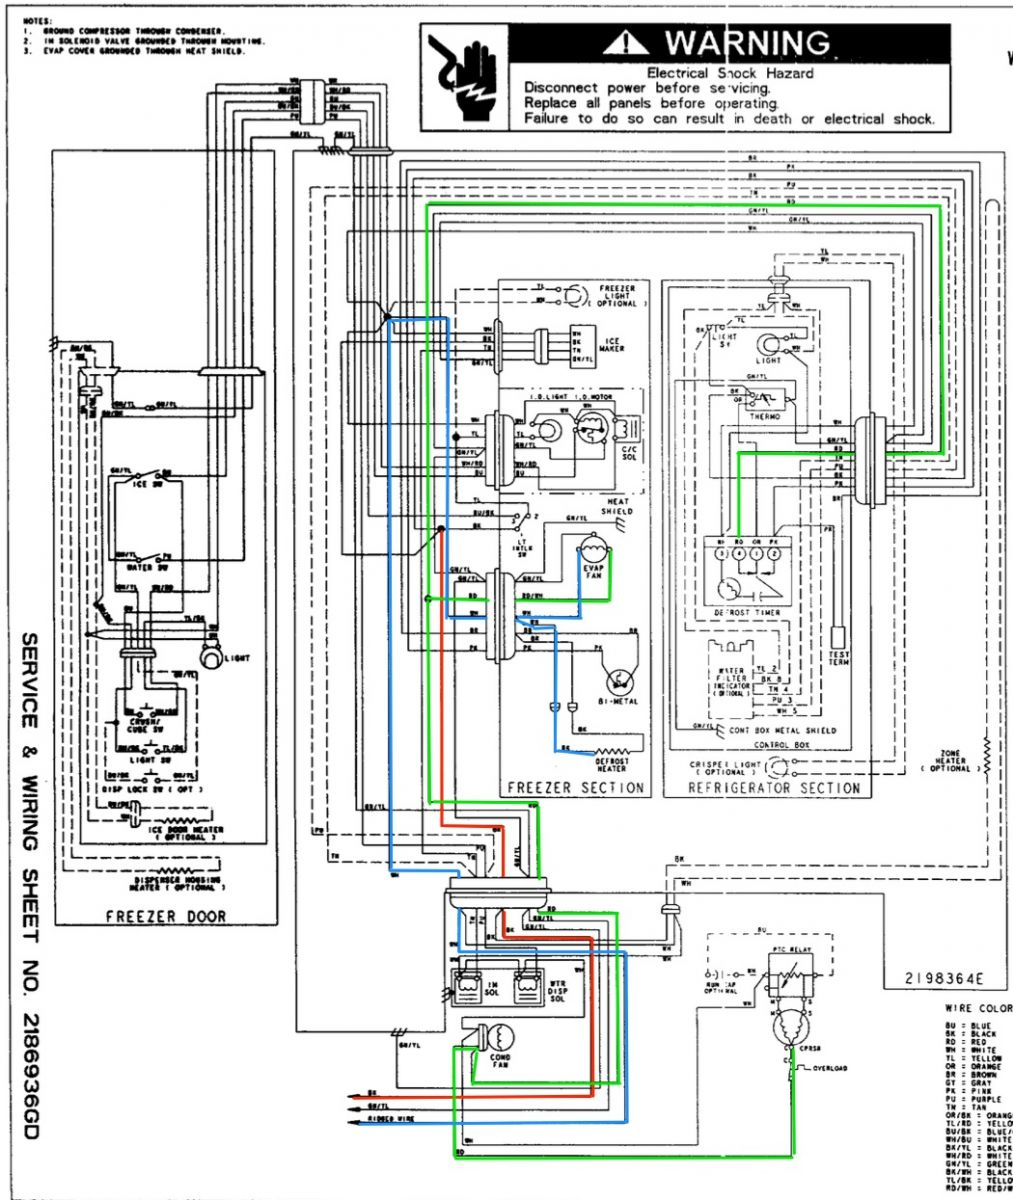 Refrigerator wiring diagram repair diy enthusiasts wiring diagrams whirlpool ed25rfxfw01 refrigerator wiring diagram the rh appliantology org dometic refrigerator wiring diagram repair whirlpool refrigerator wiring diagram asfbconference2016 Choice Image